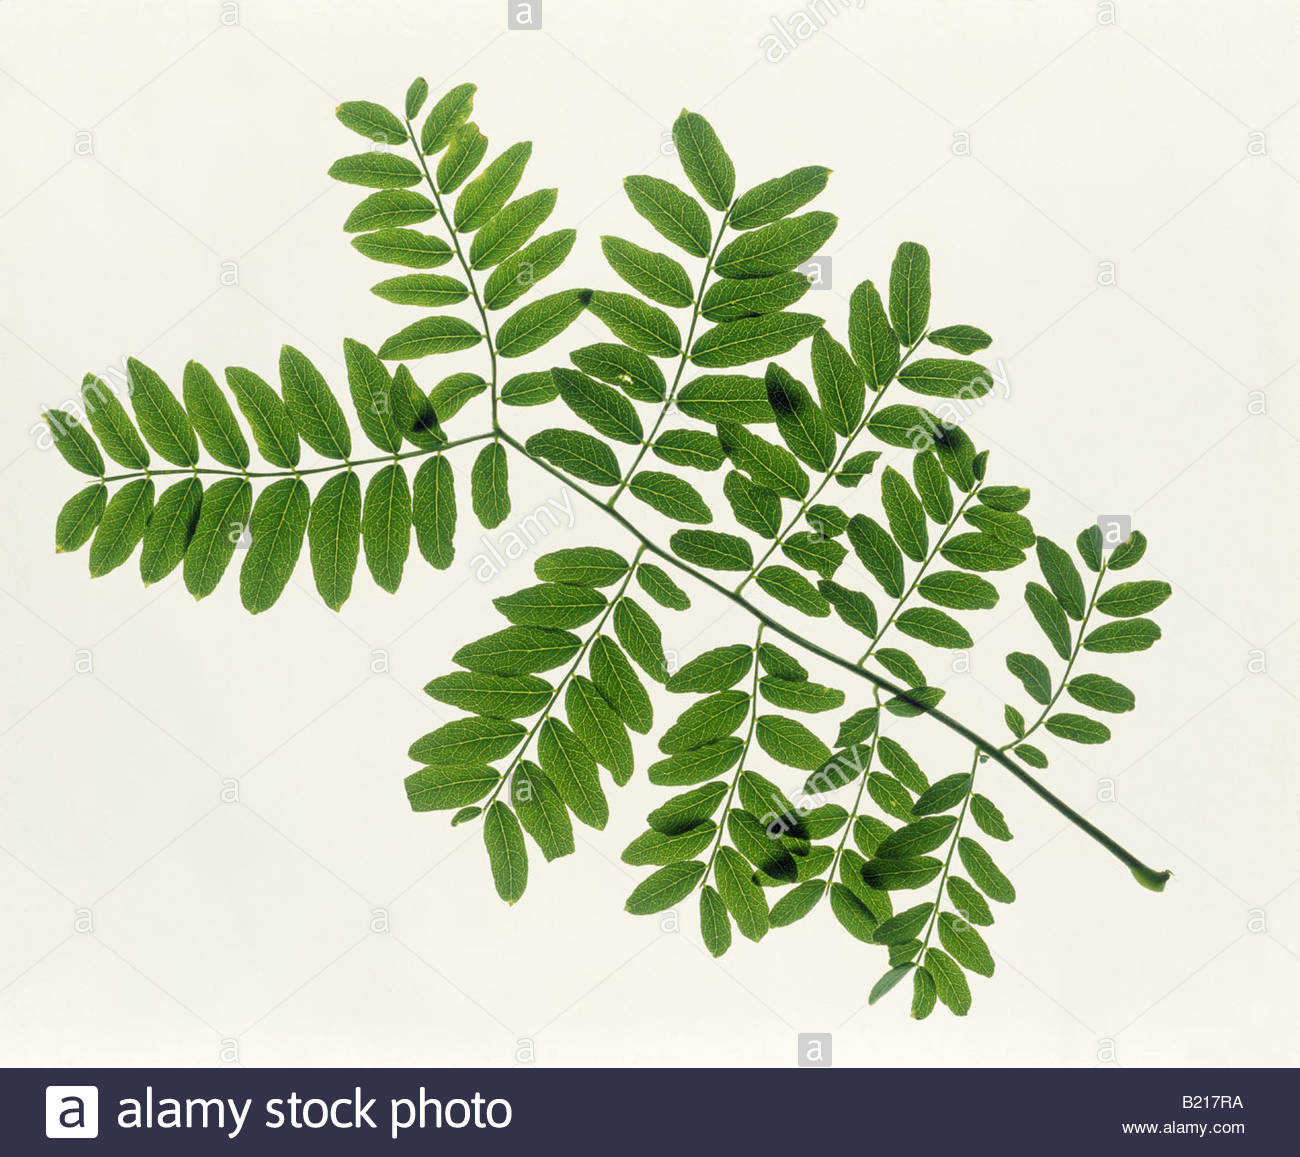 Compound Leaf Stock Photos & Compound Leaf Stock Images.